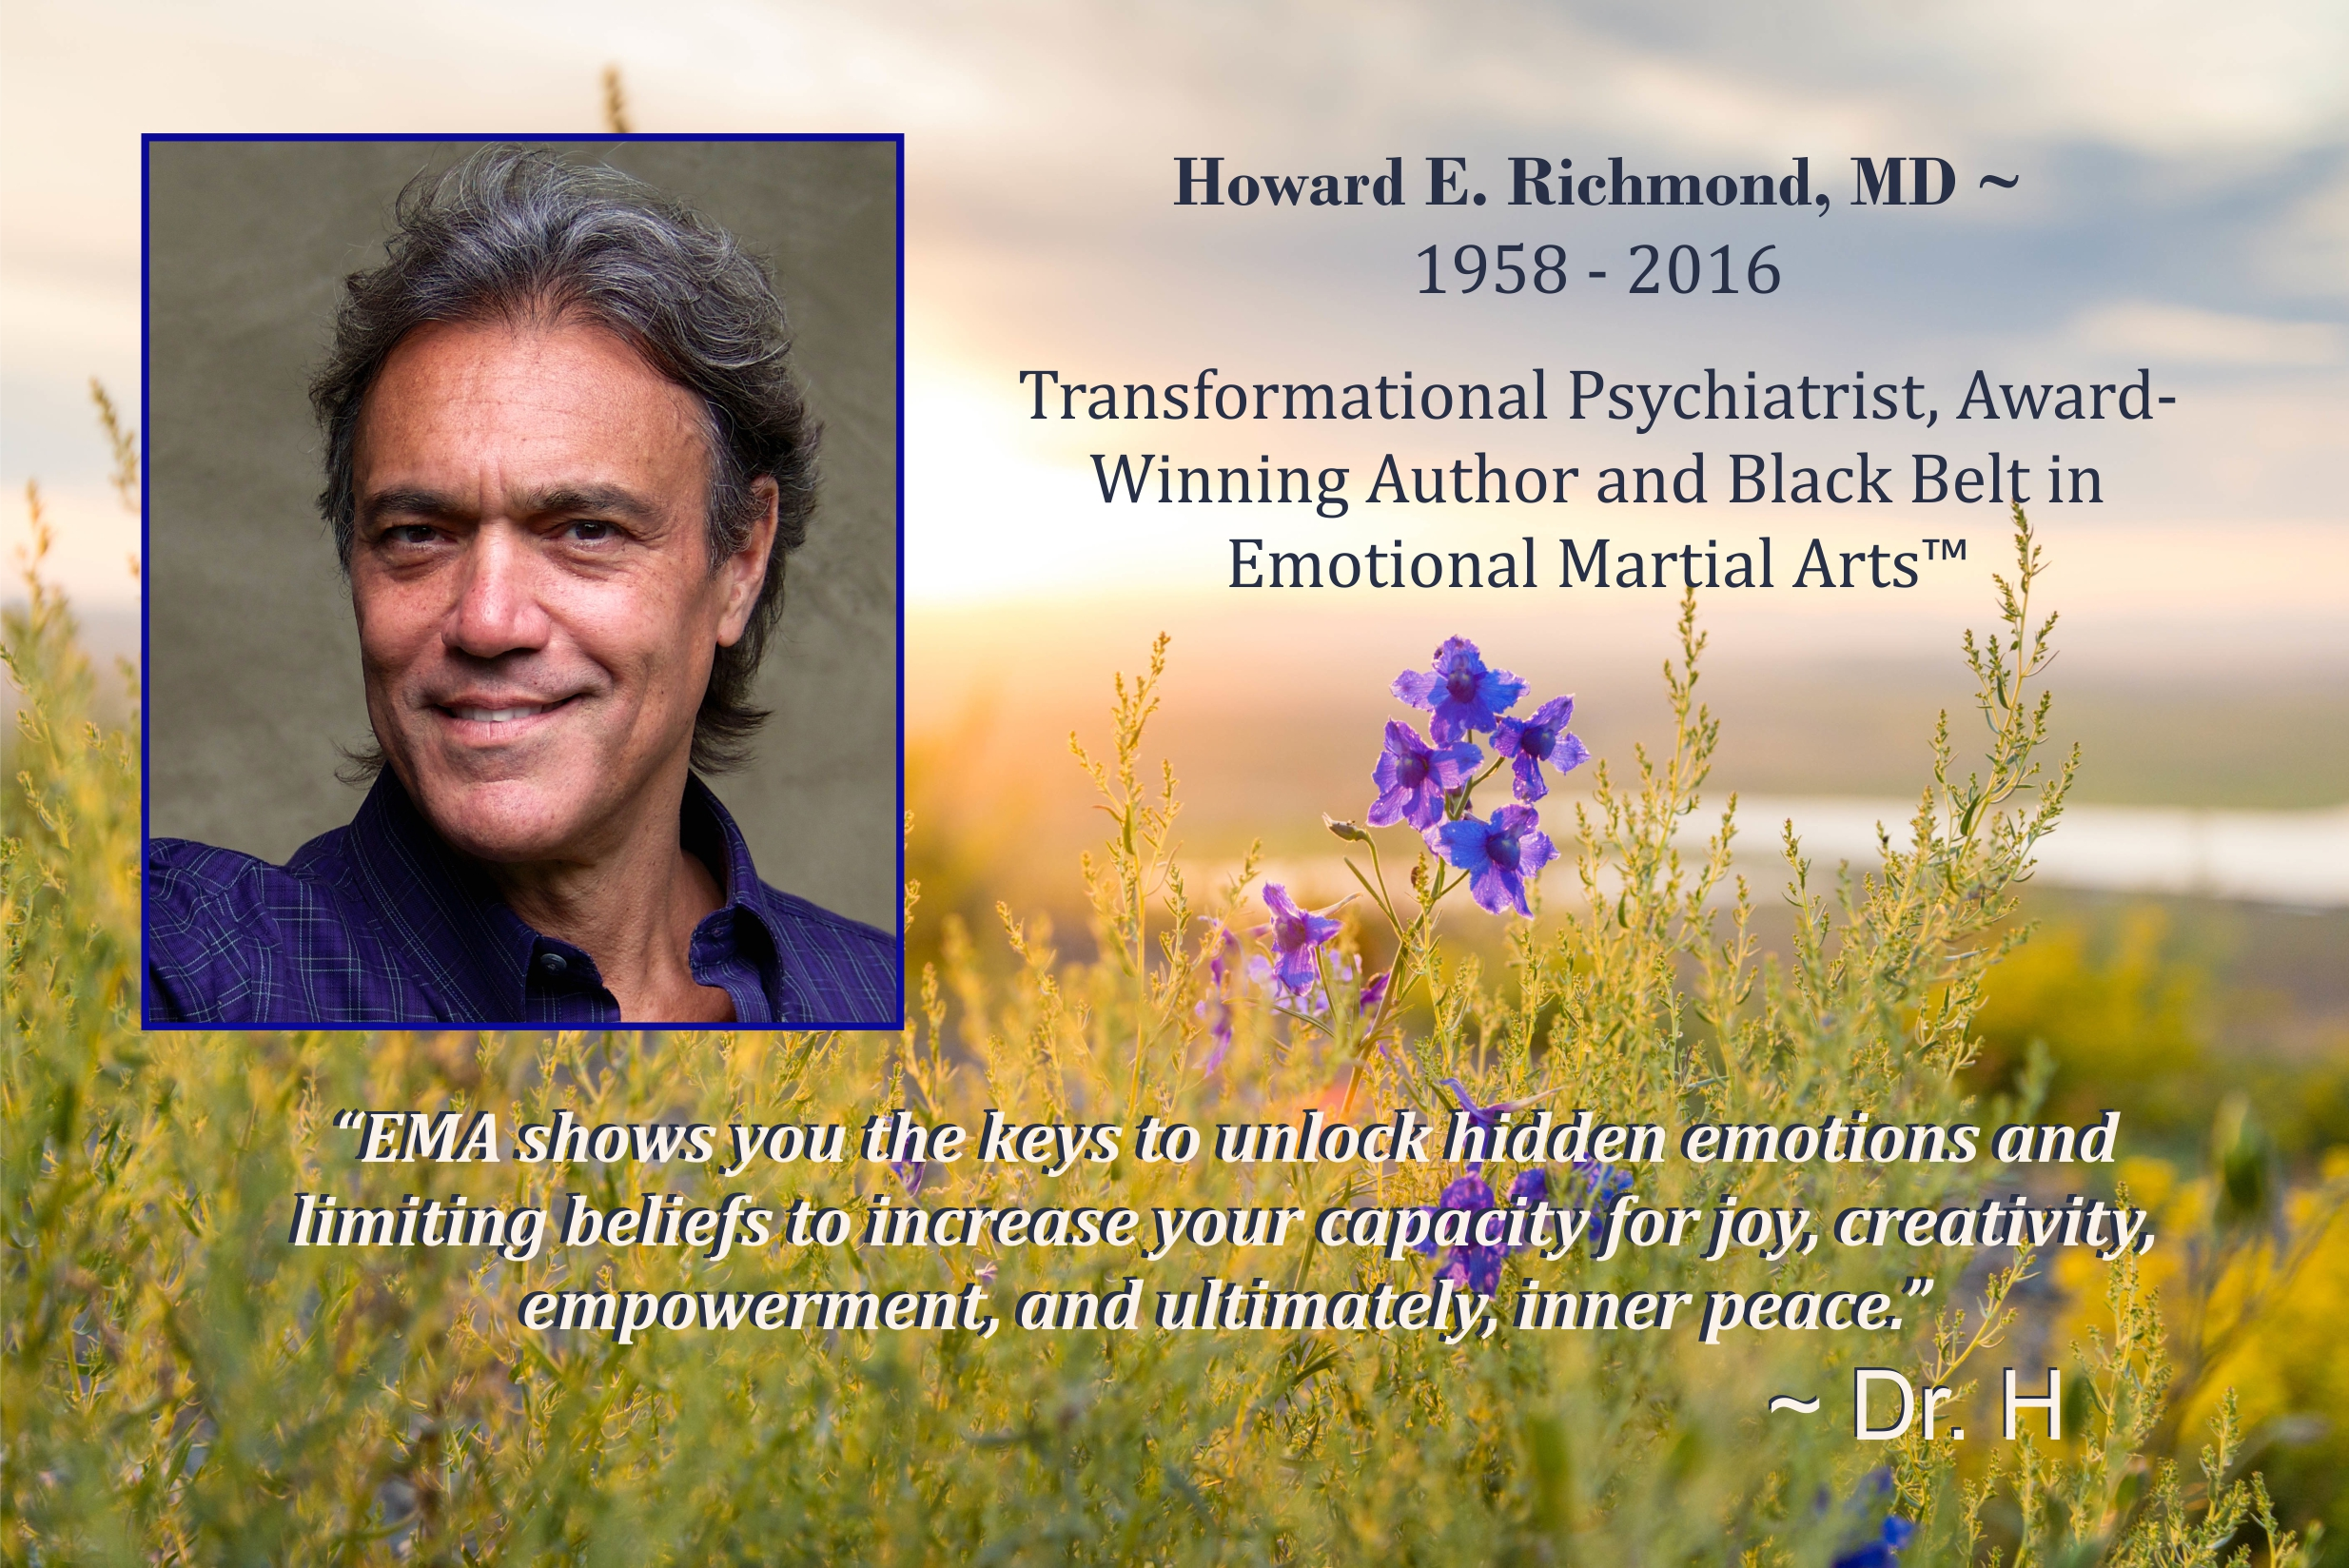 howard-e-richmond-with-ema-quote